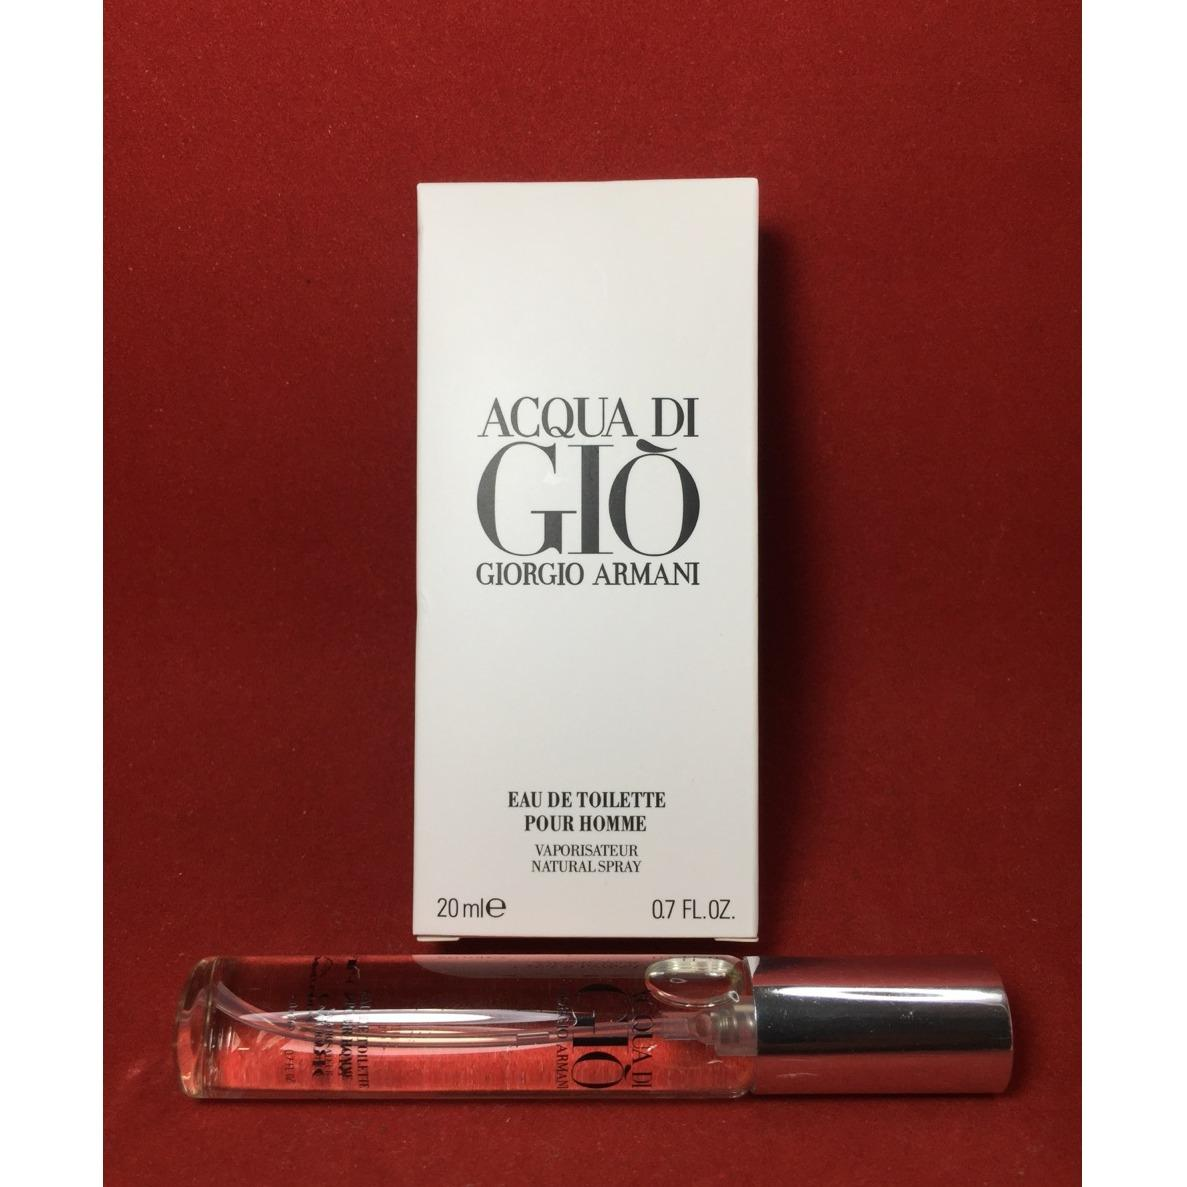 Giorgio Armani Aqua Di Gio (20ml) for Men product preview, discount at cheapest price